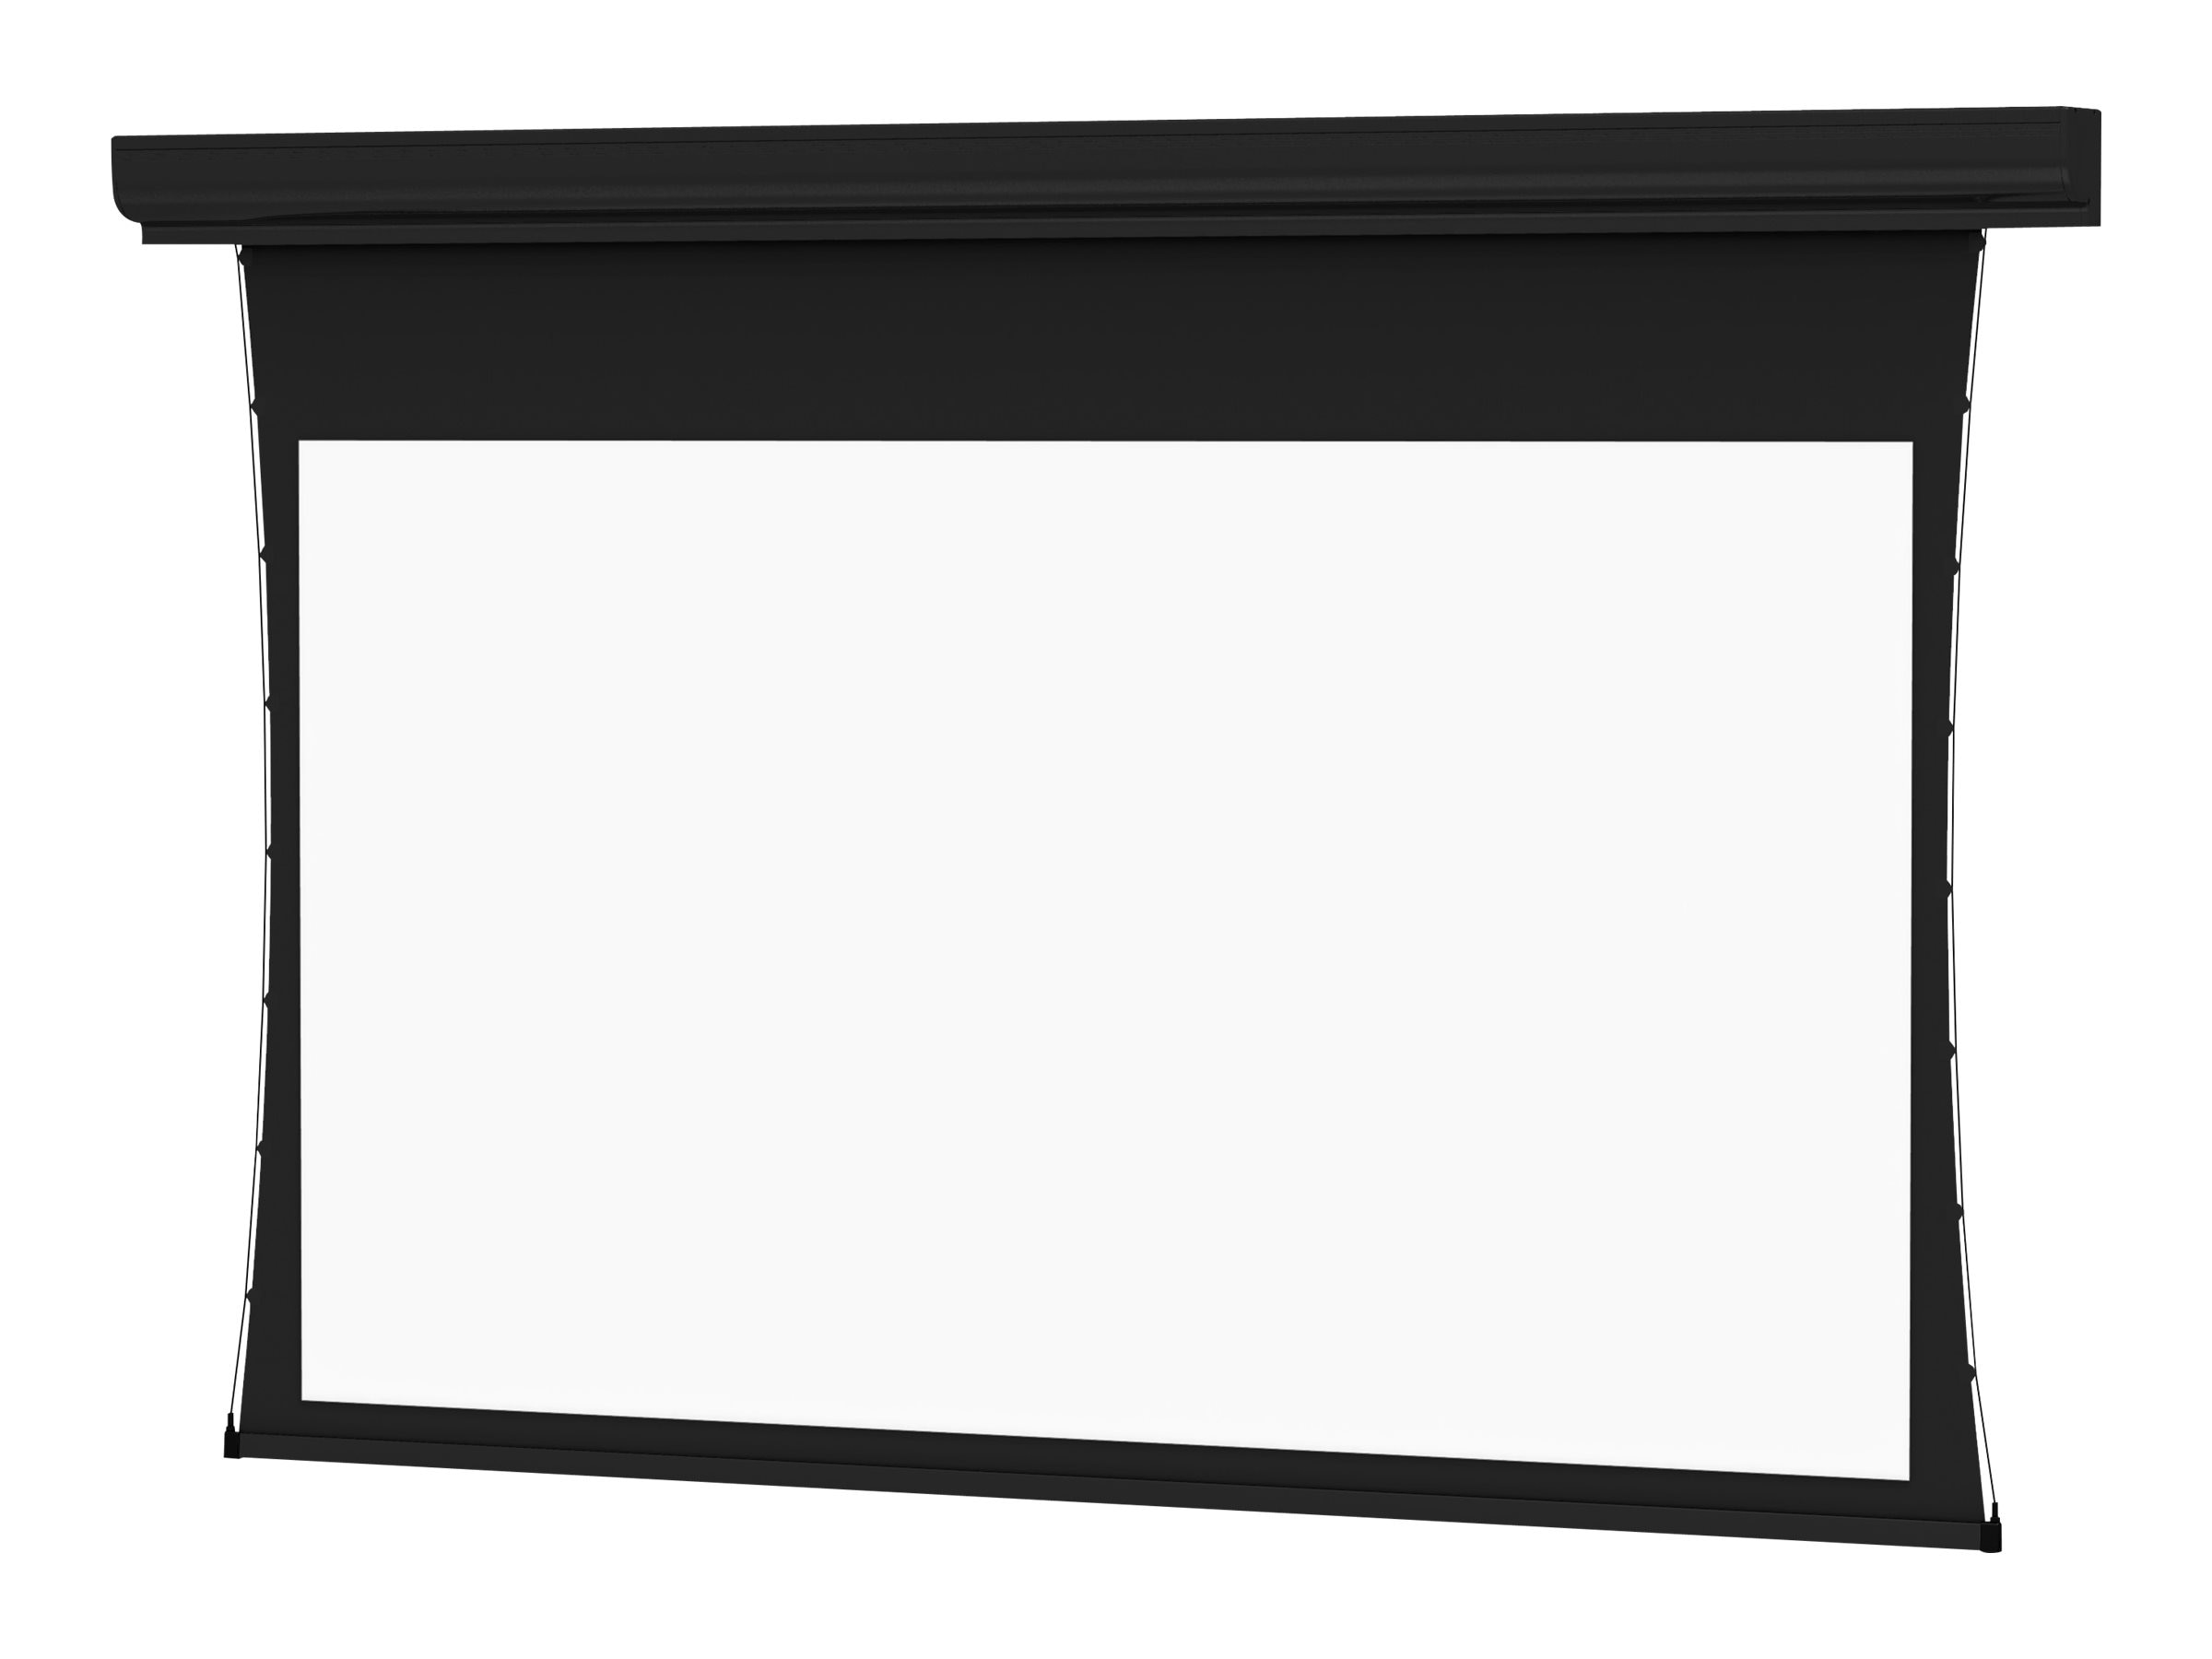 Da-Lite Tensioned Contour Electrol Projection Screen, Dual Vision, 54 x 96